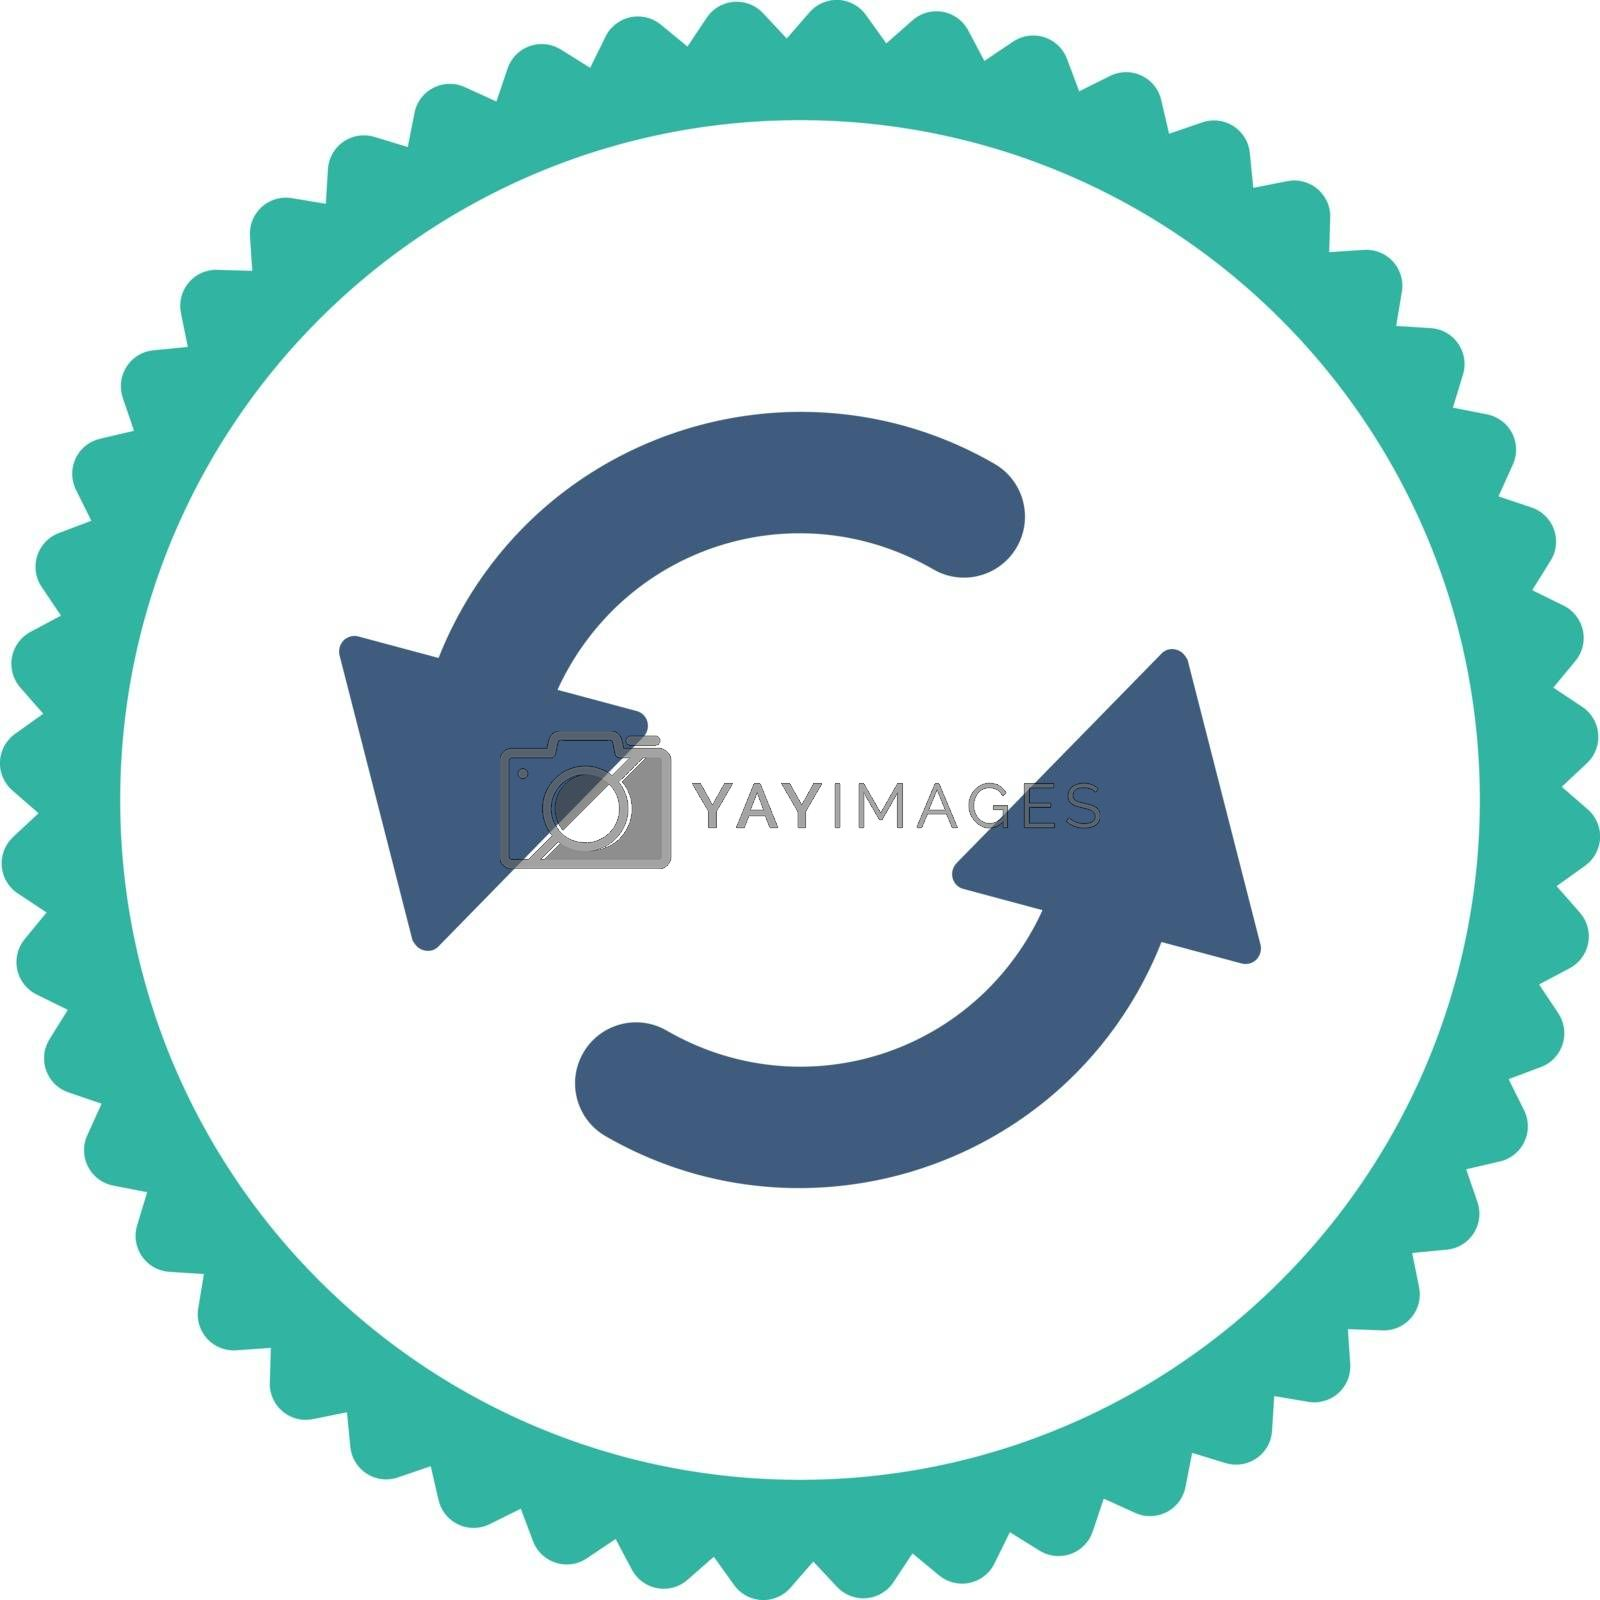 Refresh Ccw flat cobalt and cyan colors round stamp icon by Aha-Soft